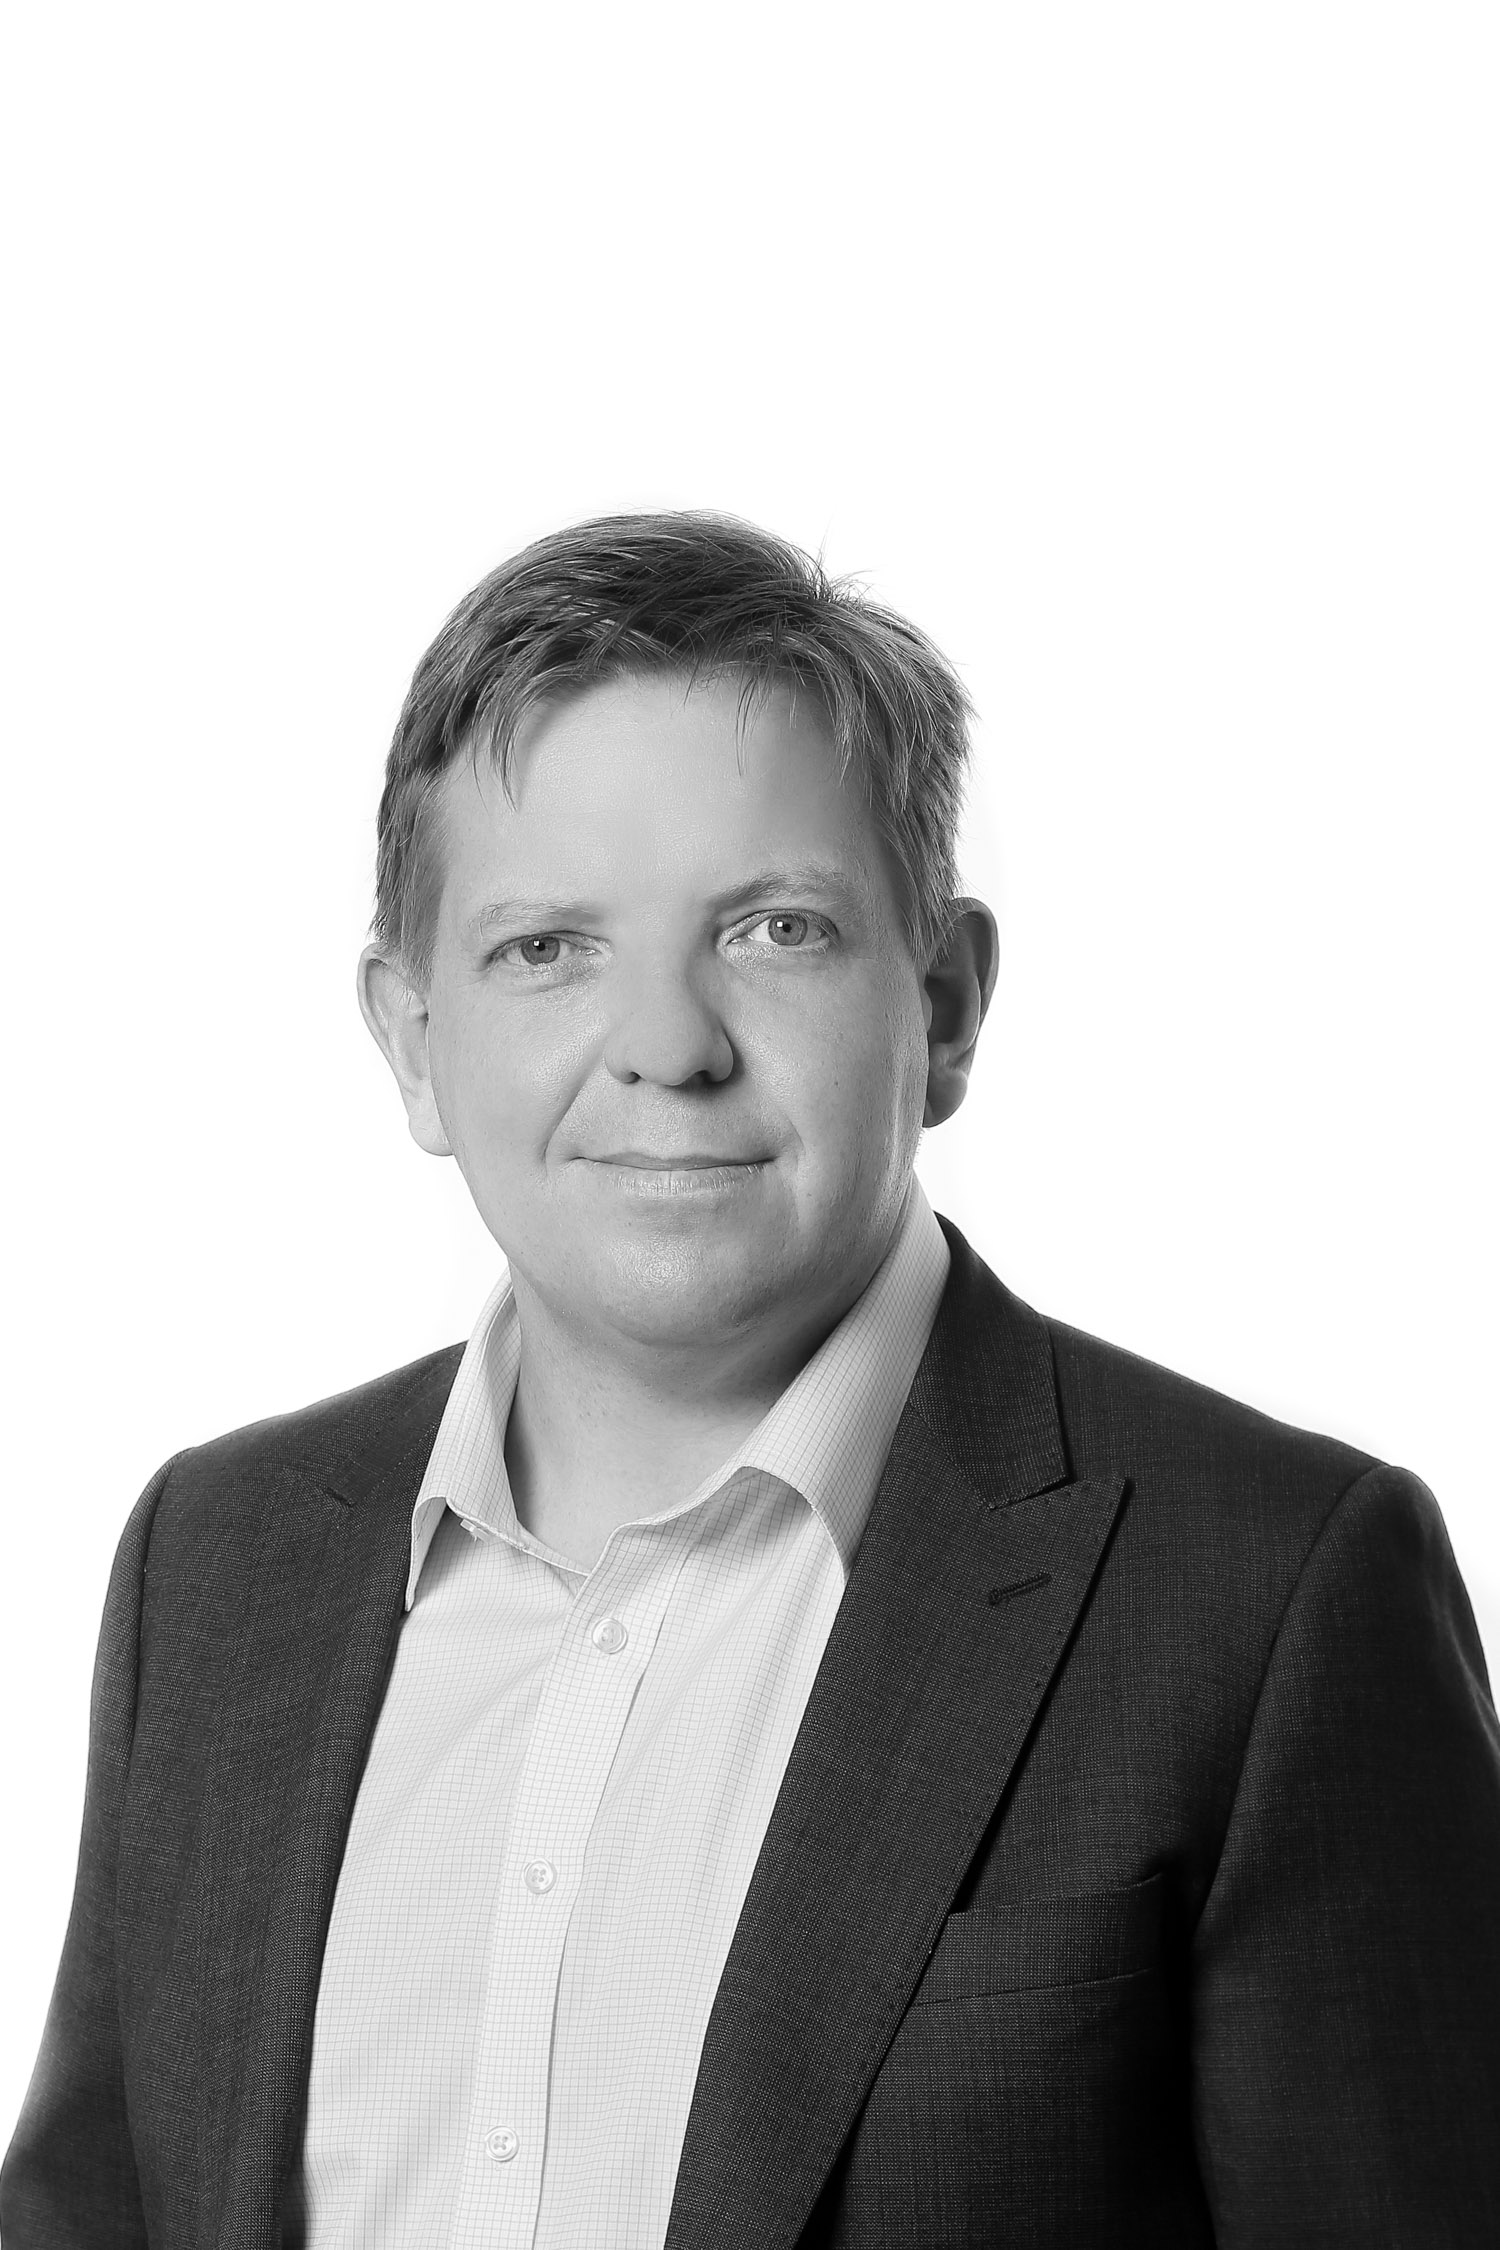 Greg Pahek - Chief Financial OfficerGreg oversees Ryan Legal's finance and business management functions. He has worked in finance and accounting in a range of industries.